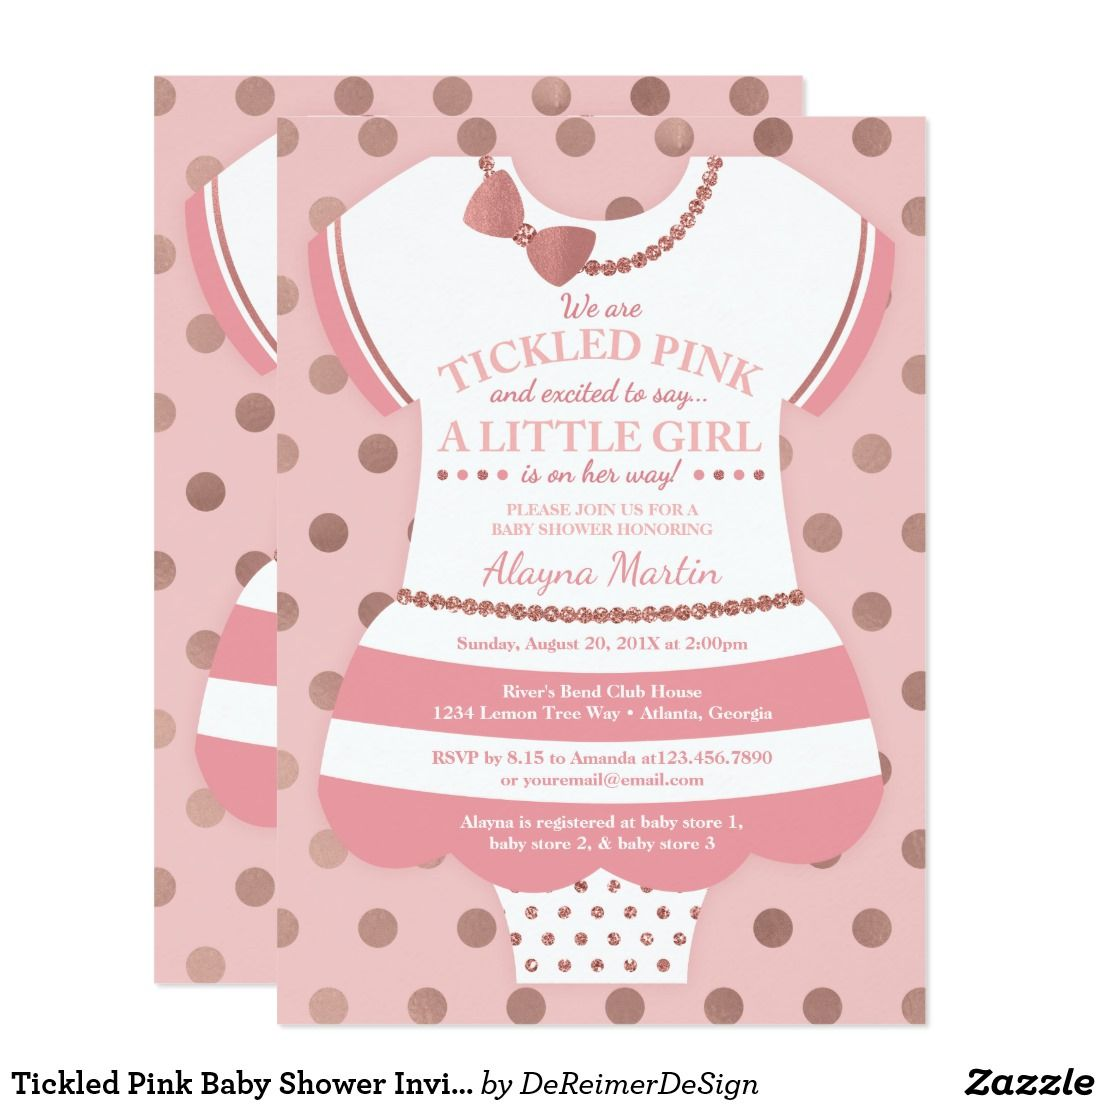 Tickled Pink Baby Shower Invitation, Faux Glitter Card   Invitations ...